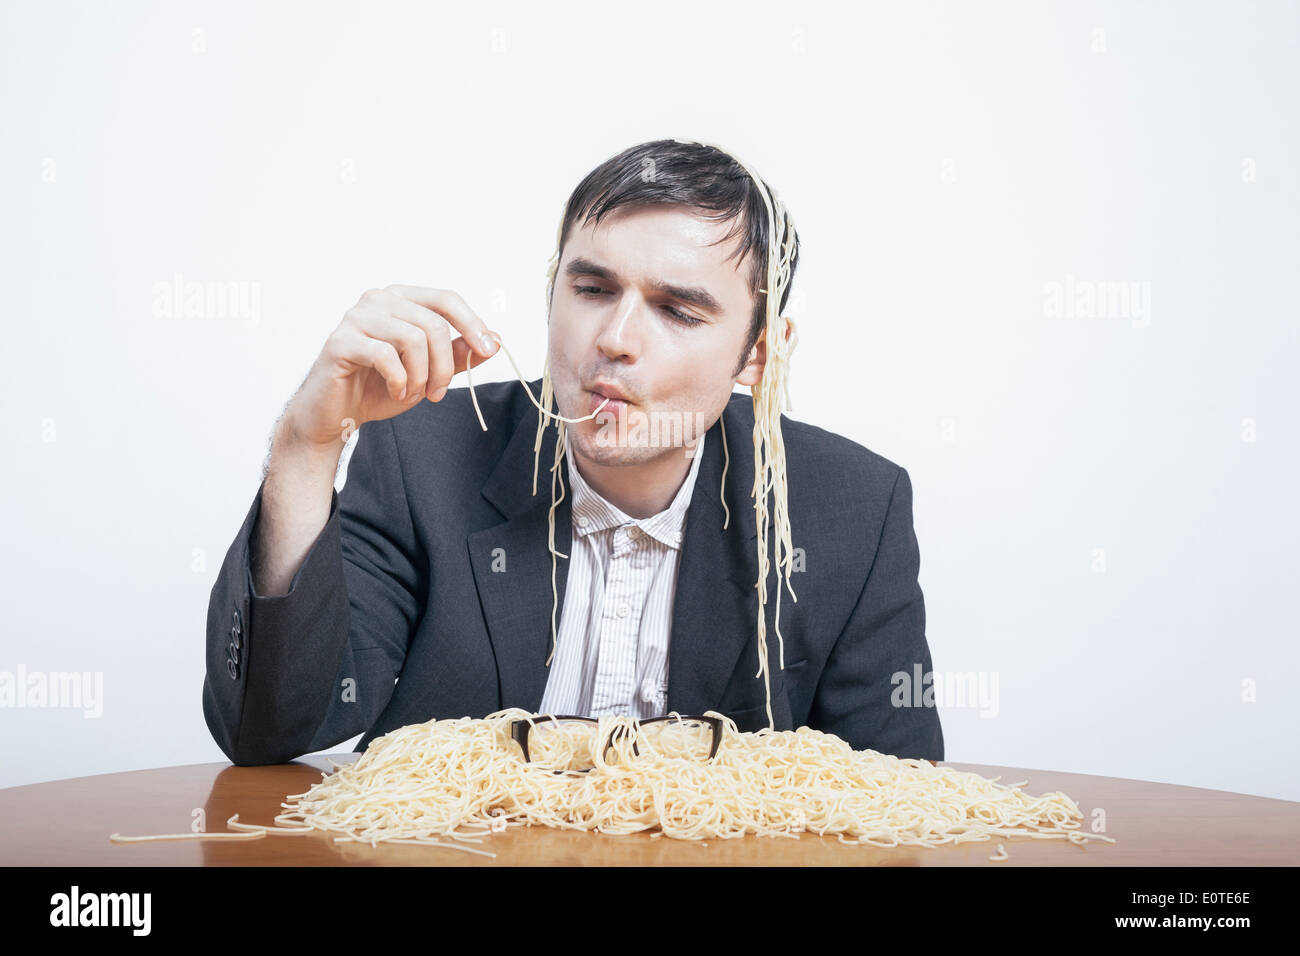 Indulgence and consumerism concept. Gluttonous businessman eating pasta. - Stock Image